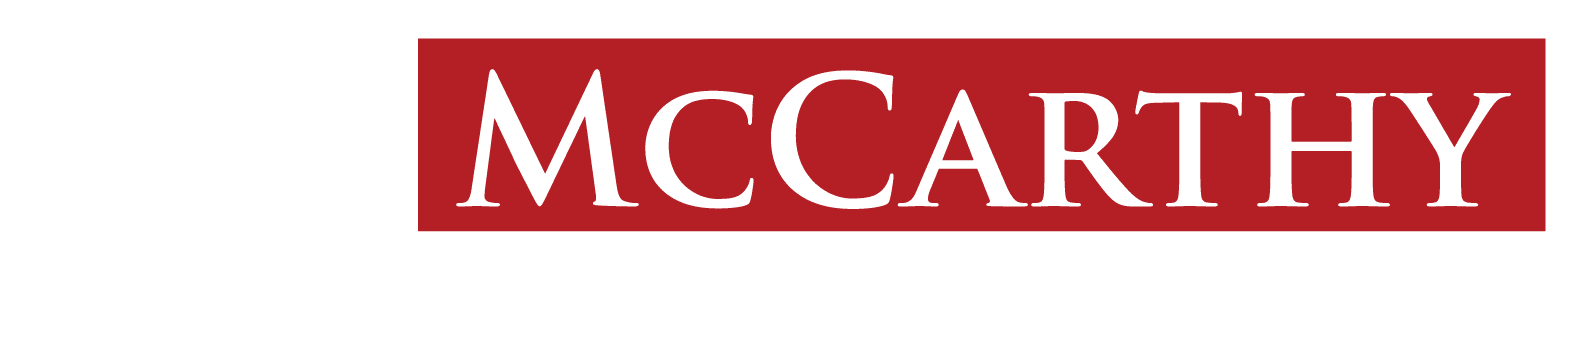 McCarthy Strategic Solutions